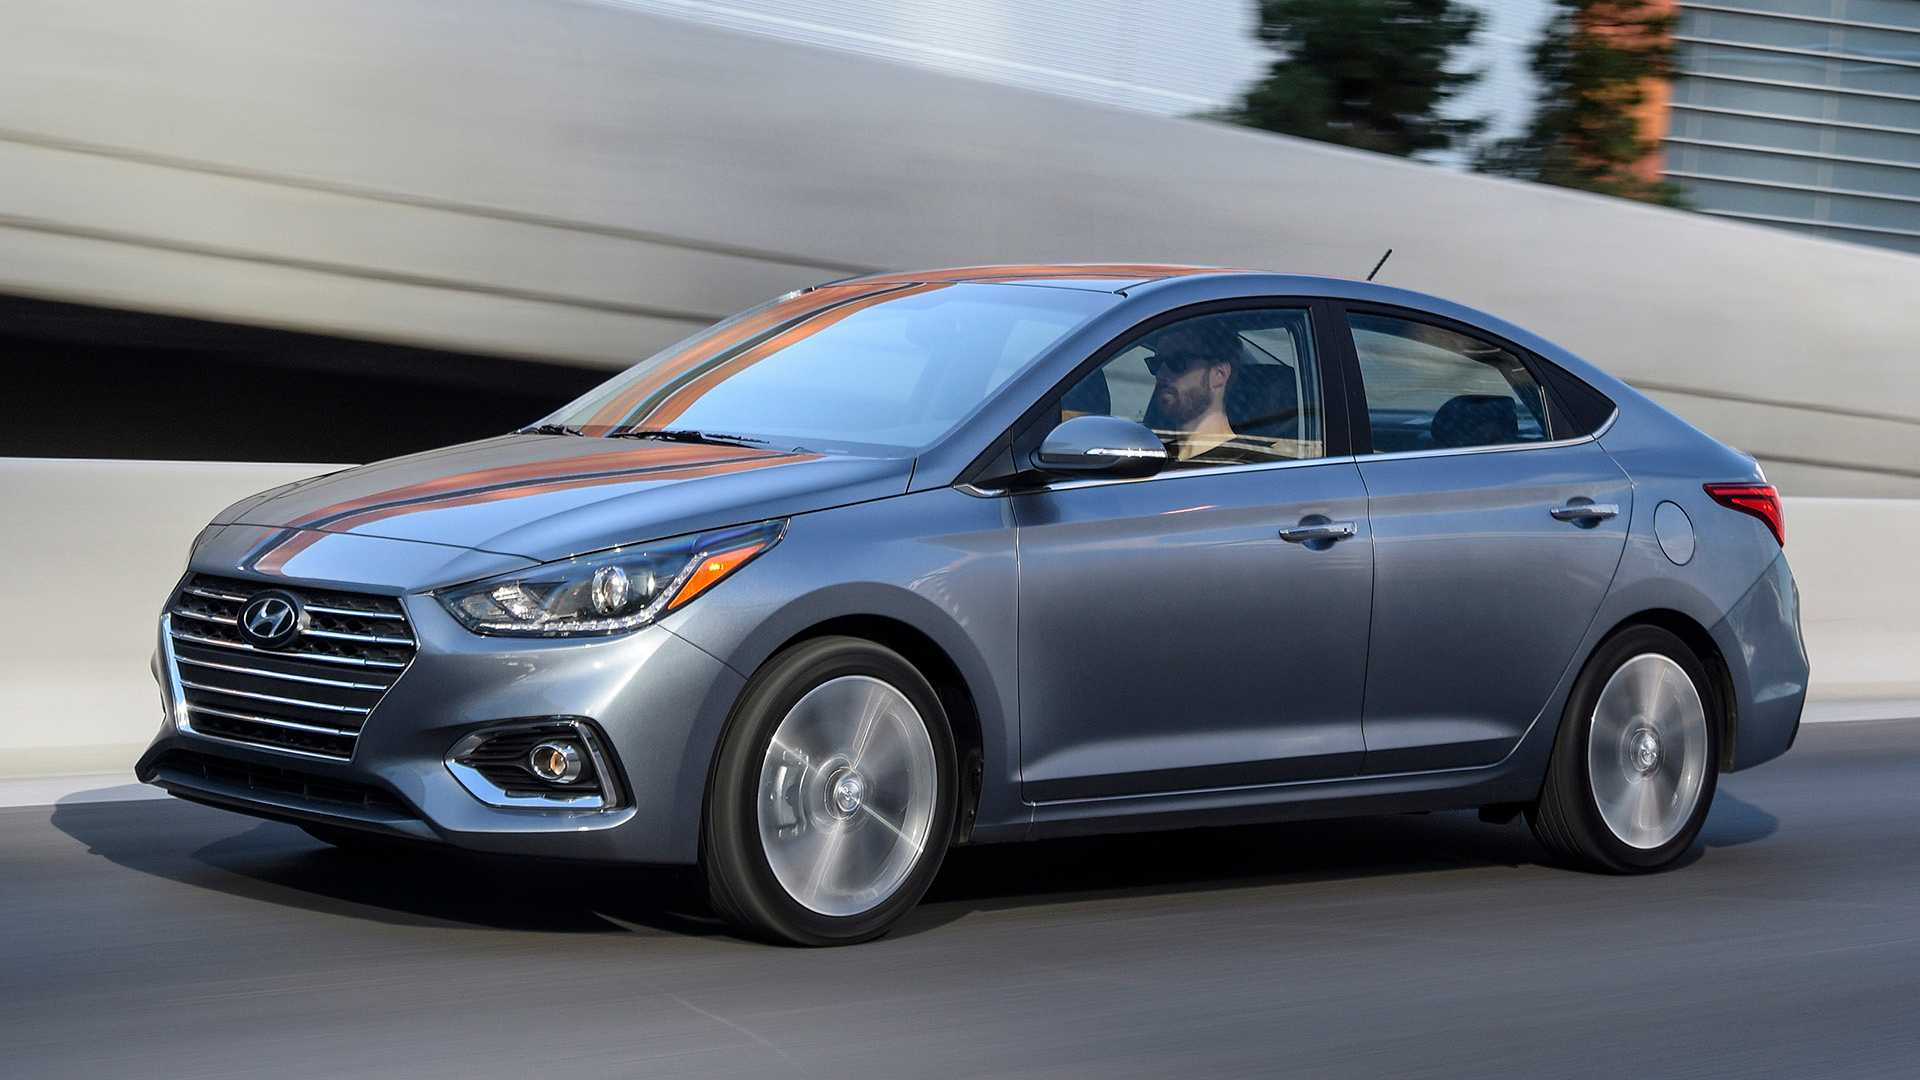 2020 Hyundai Accent New Model and Performance